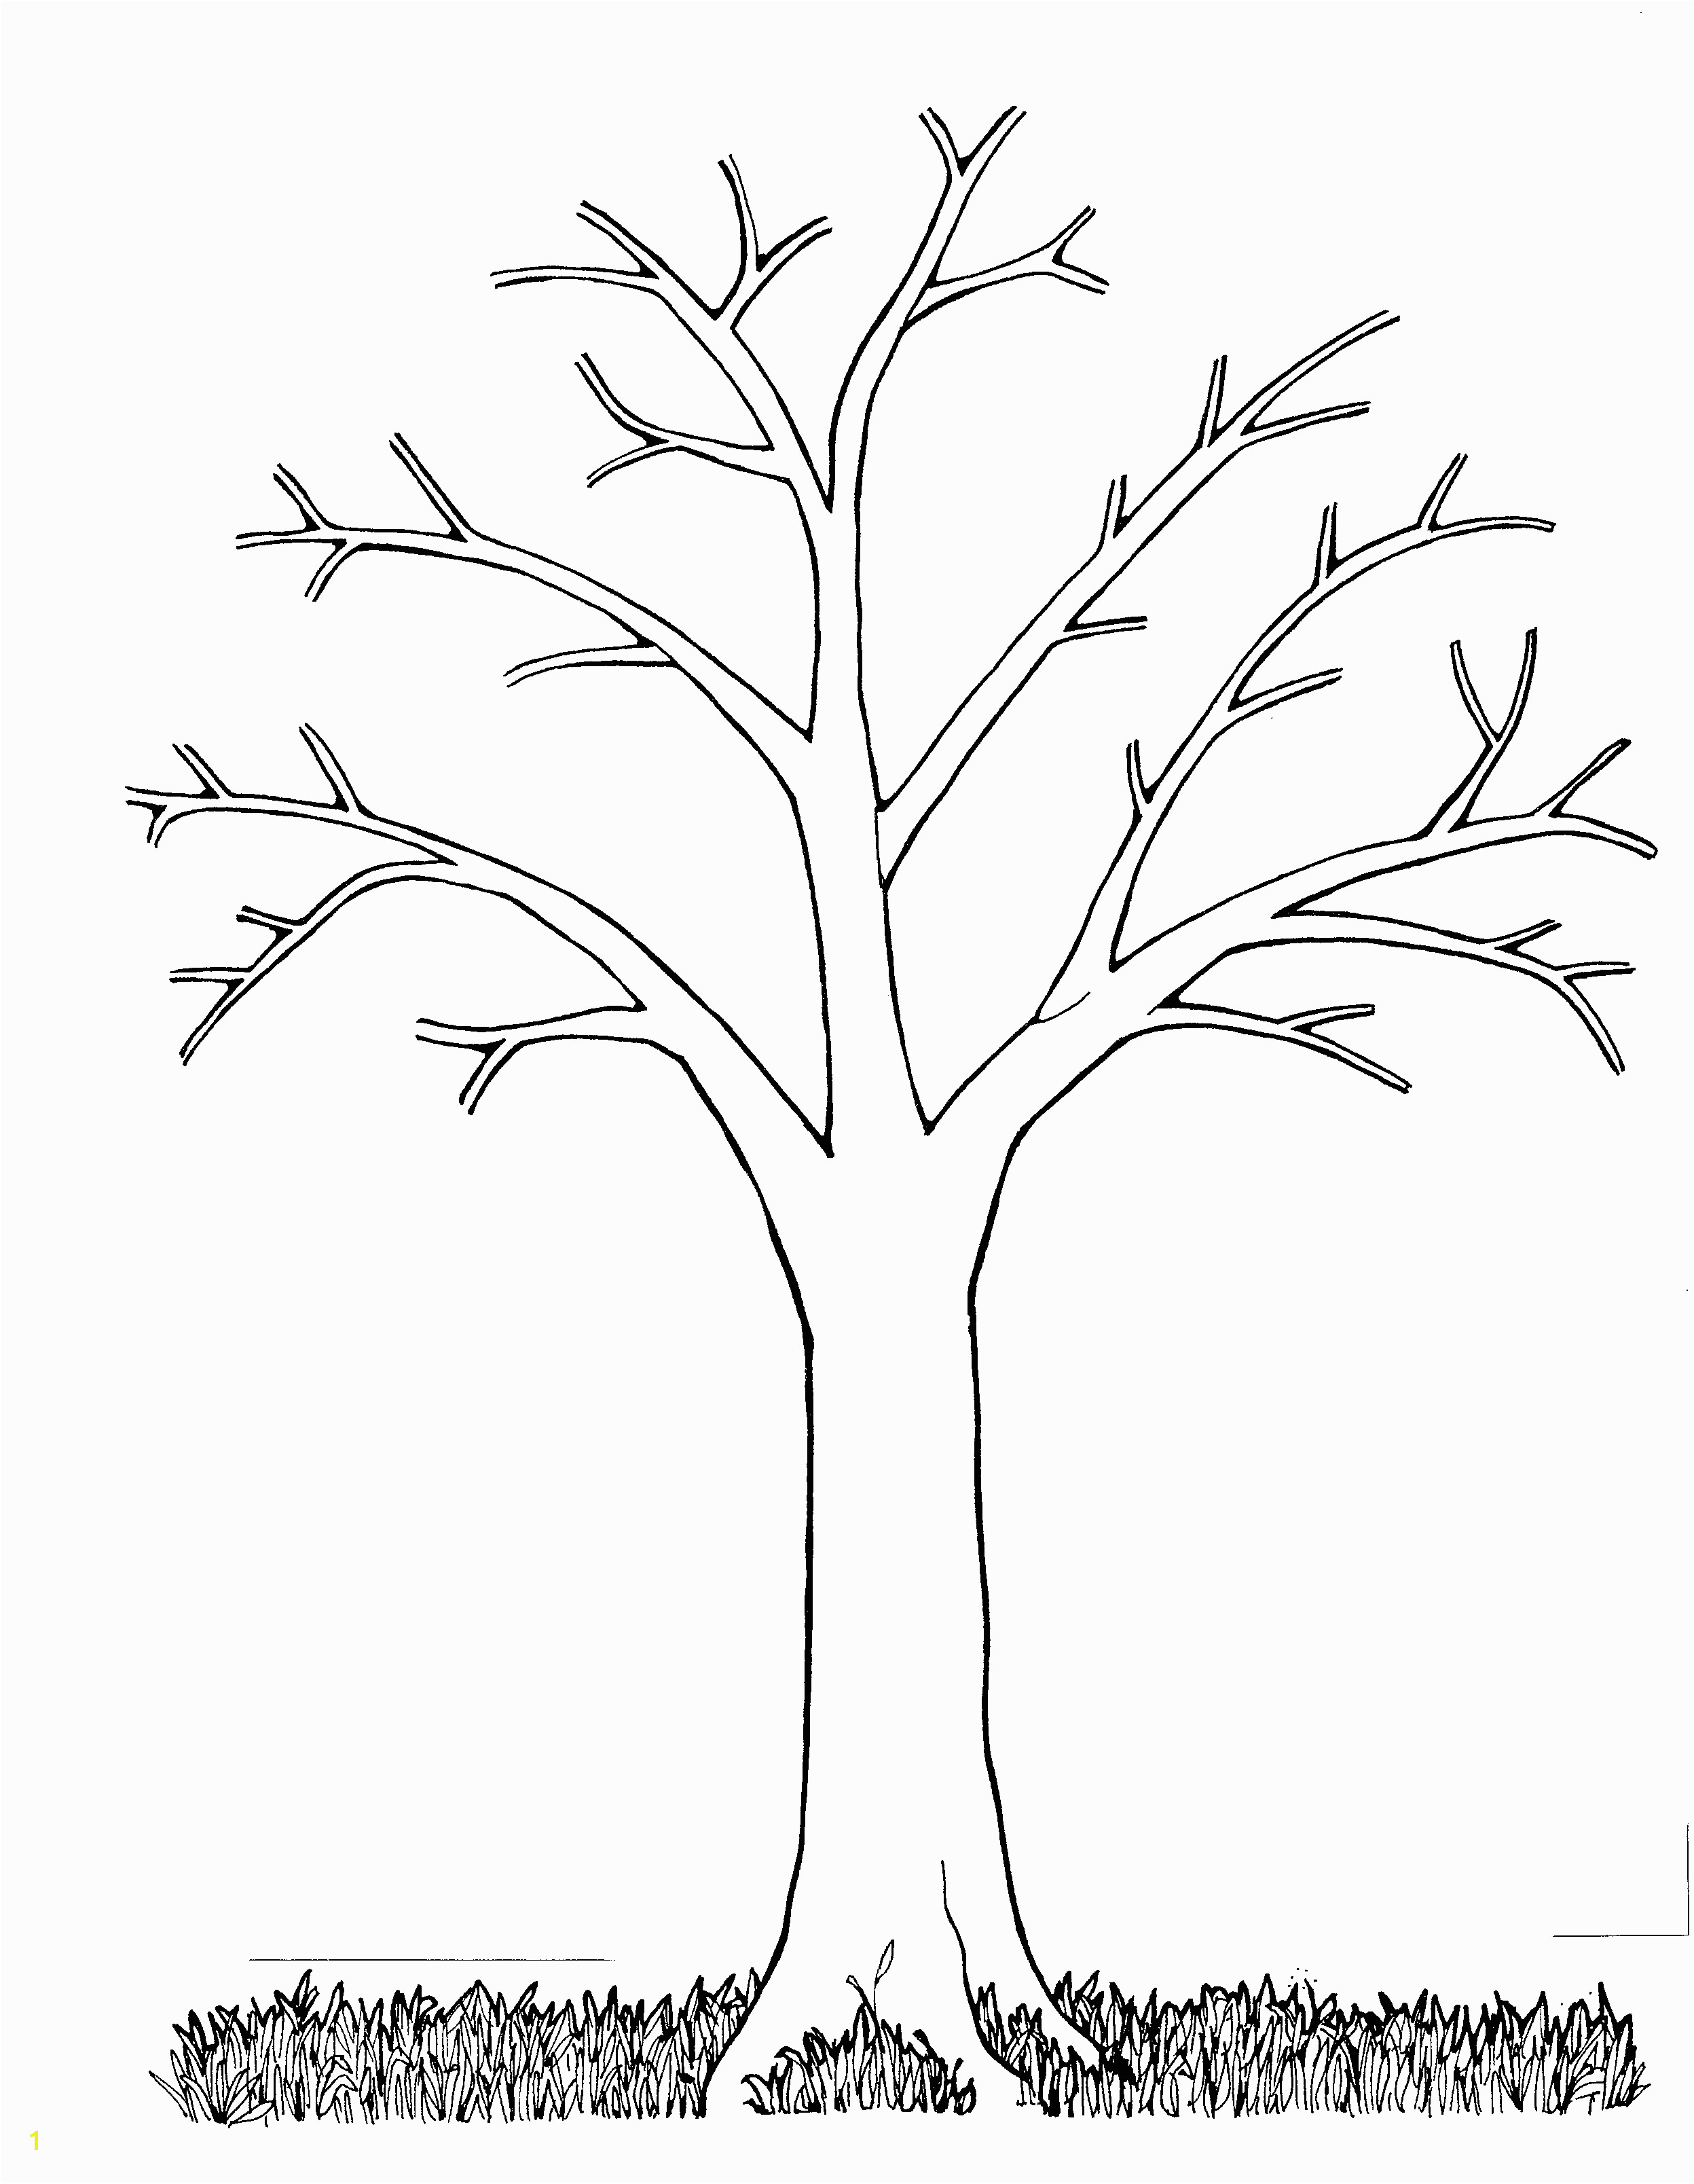 mormon share tree bare fall trees white image and clip art